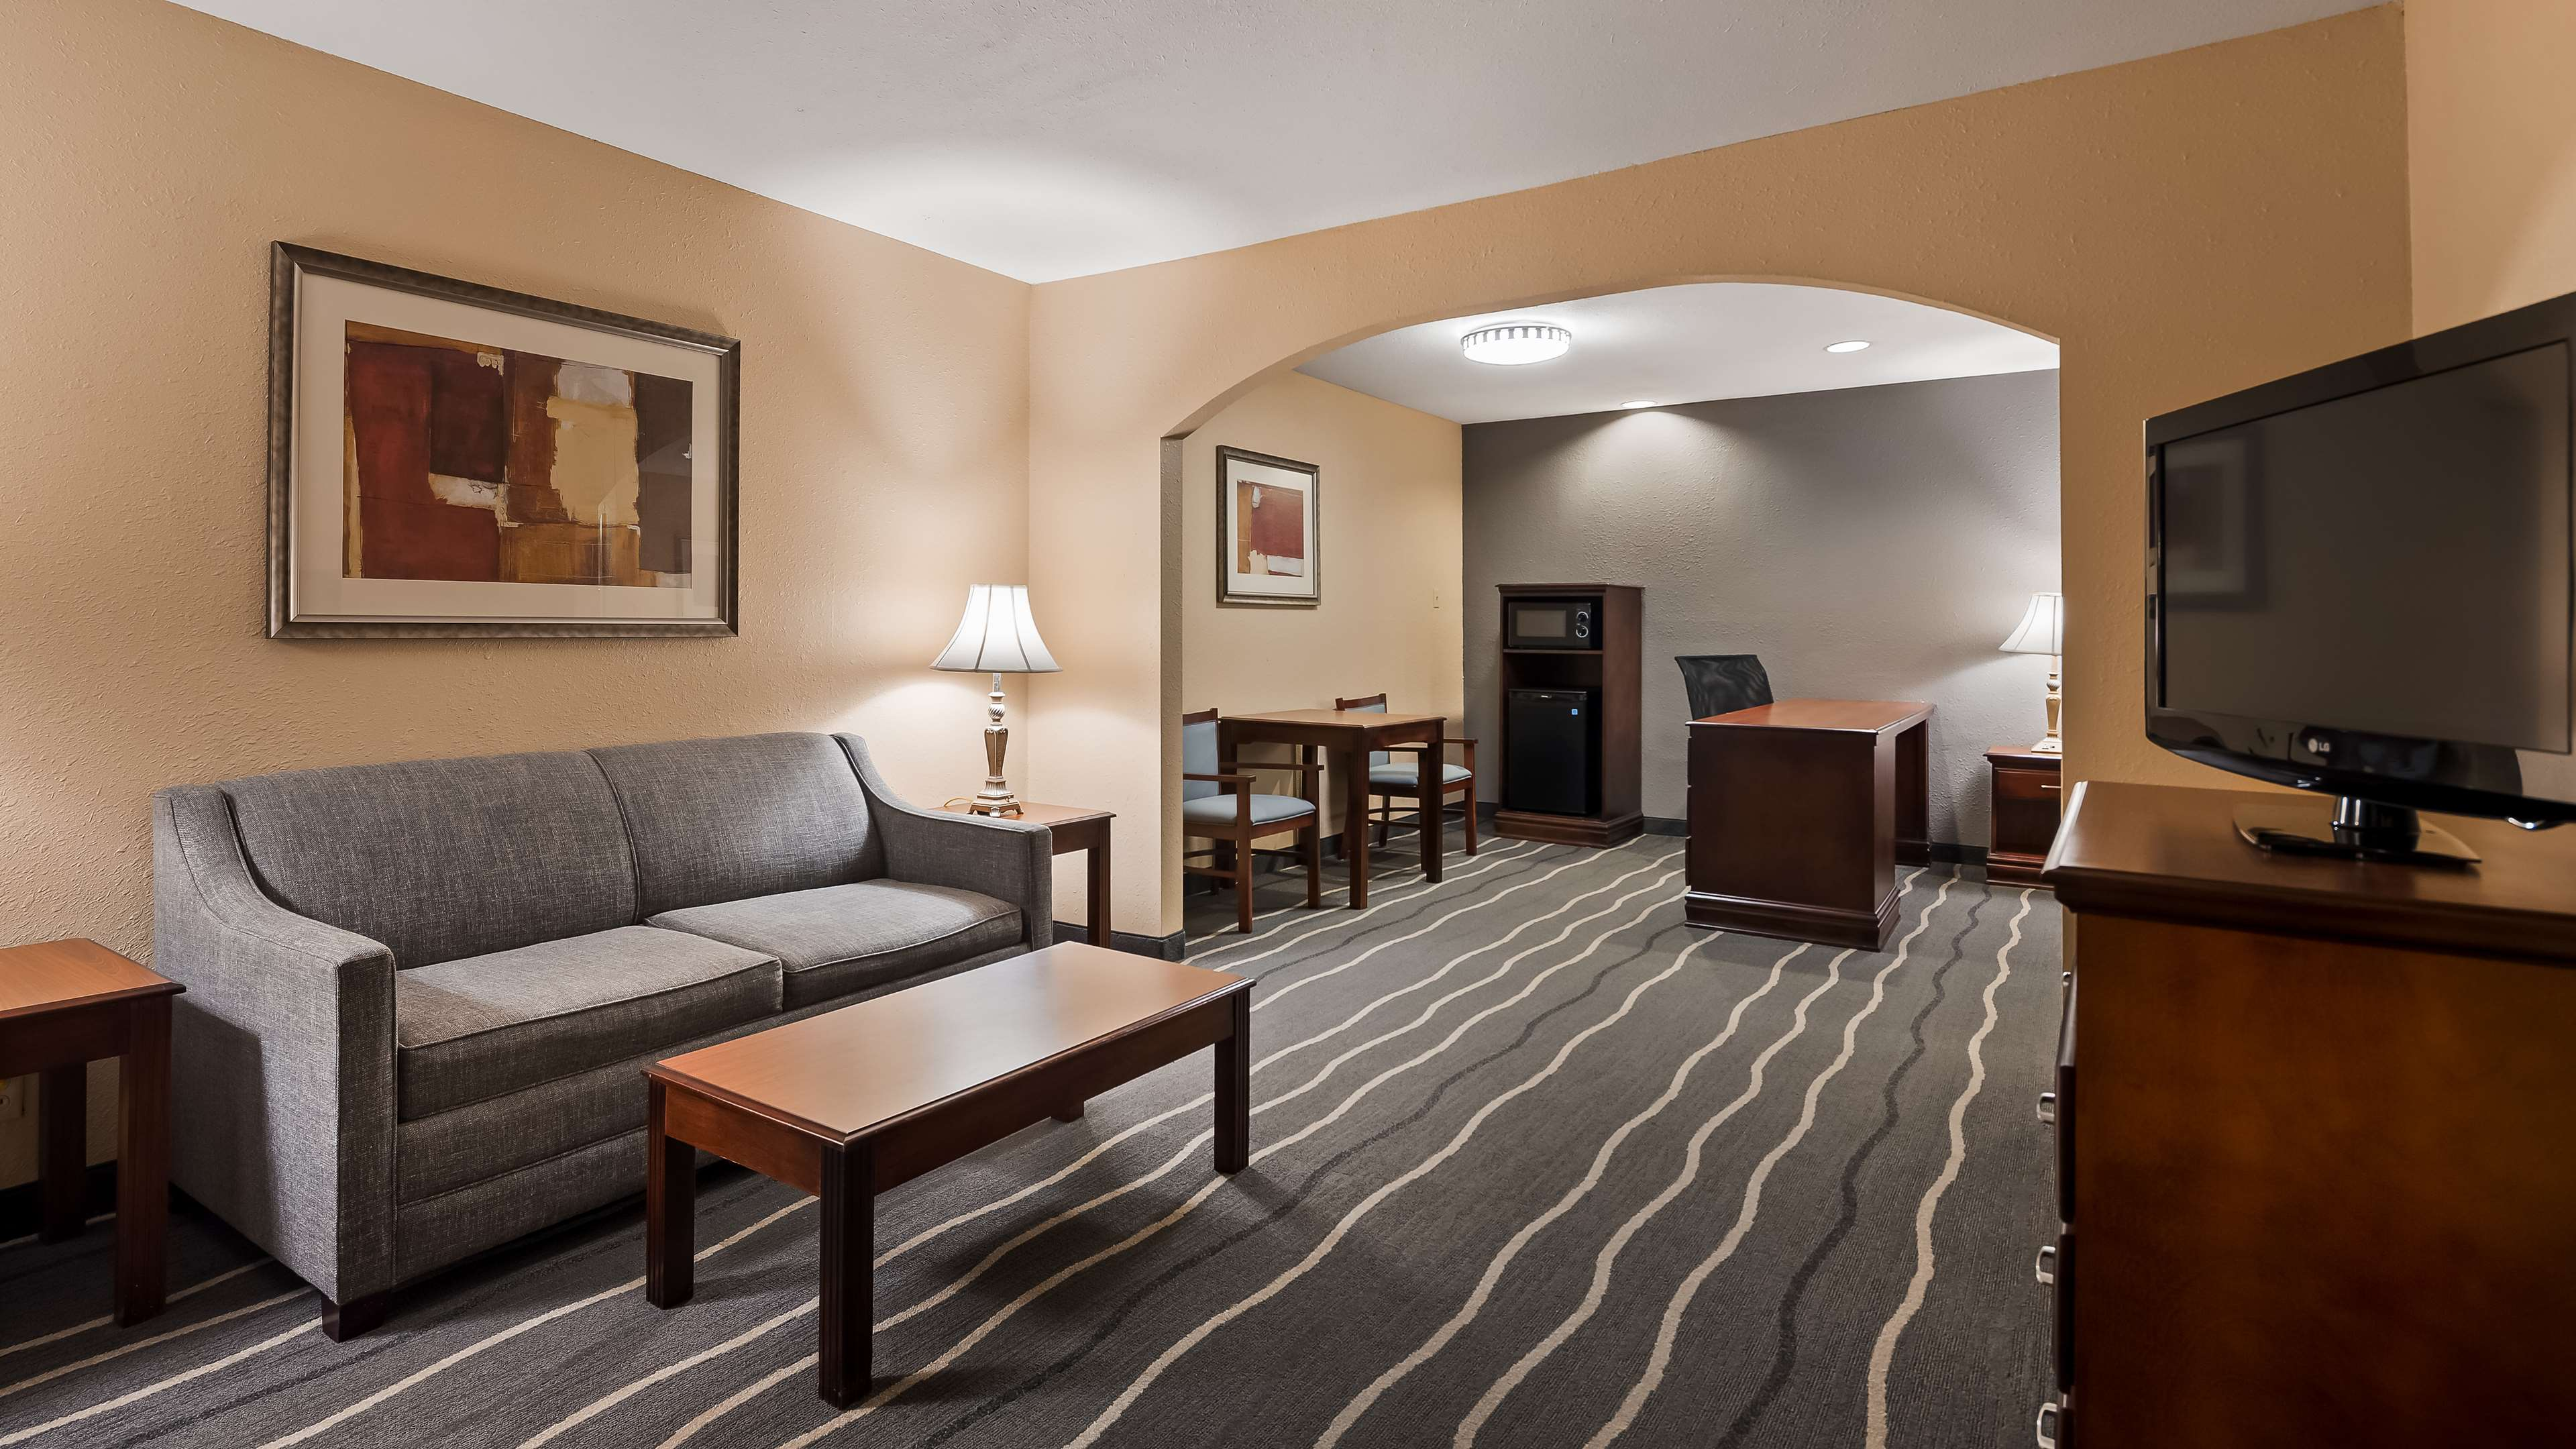 Best Western Irving Inn & Suites at DFW Airport image 22